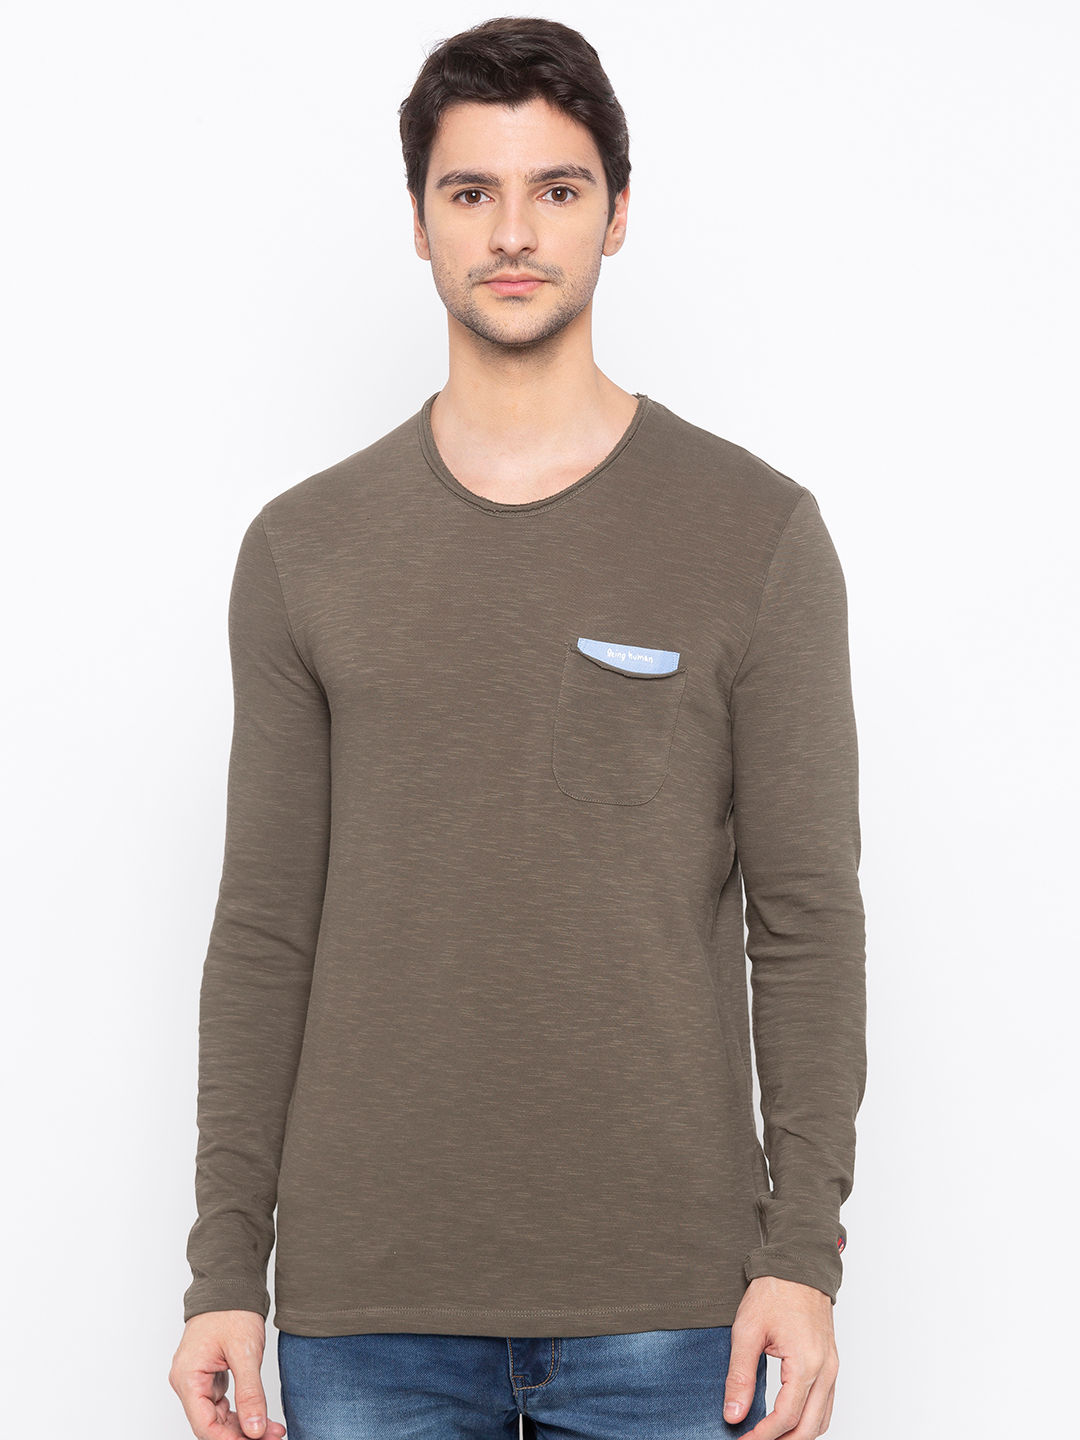 Mens Long Sleeve Crew Neck T-shirt with HD Print